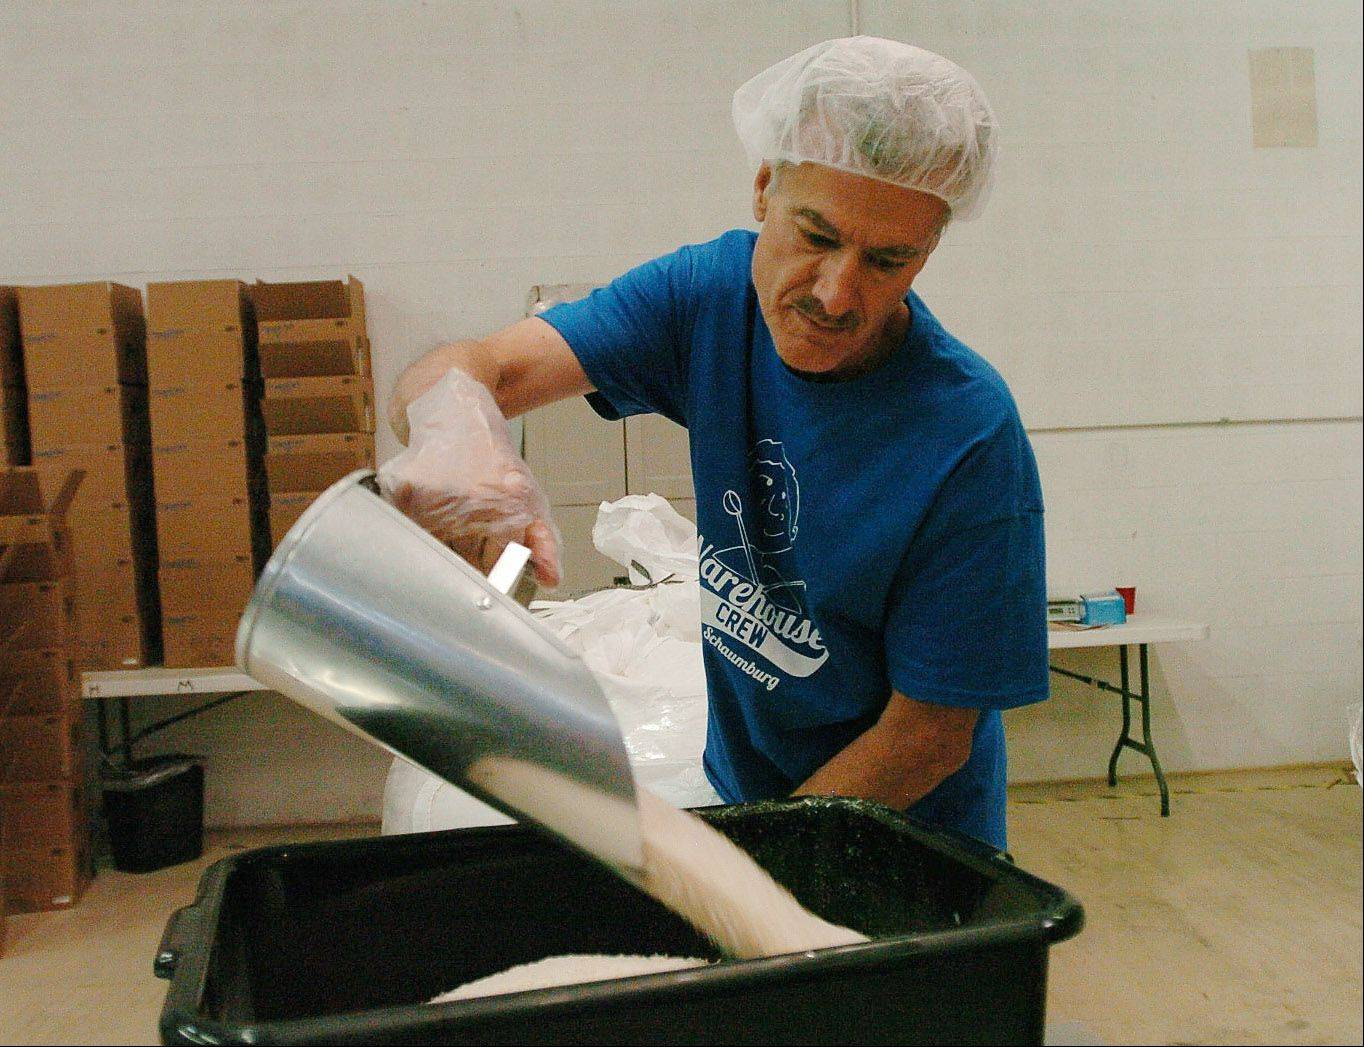 Rich Direnzo of Lombard fills a bin with rice at Feed My Starving Children in Schaumburg.